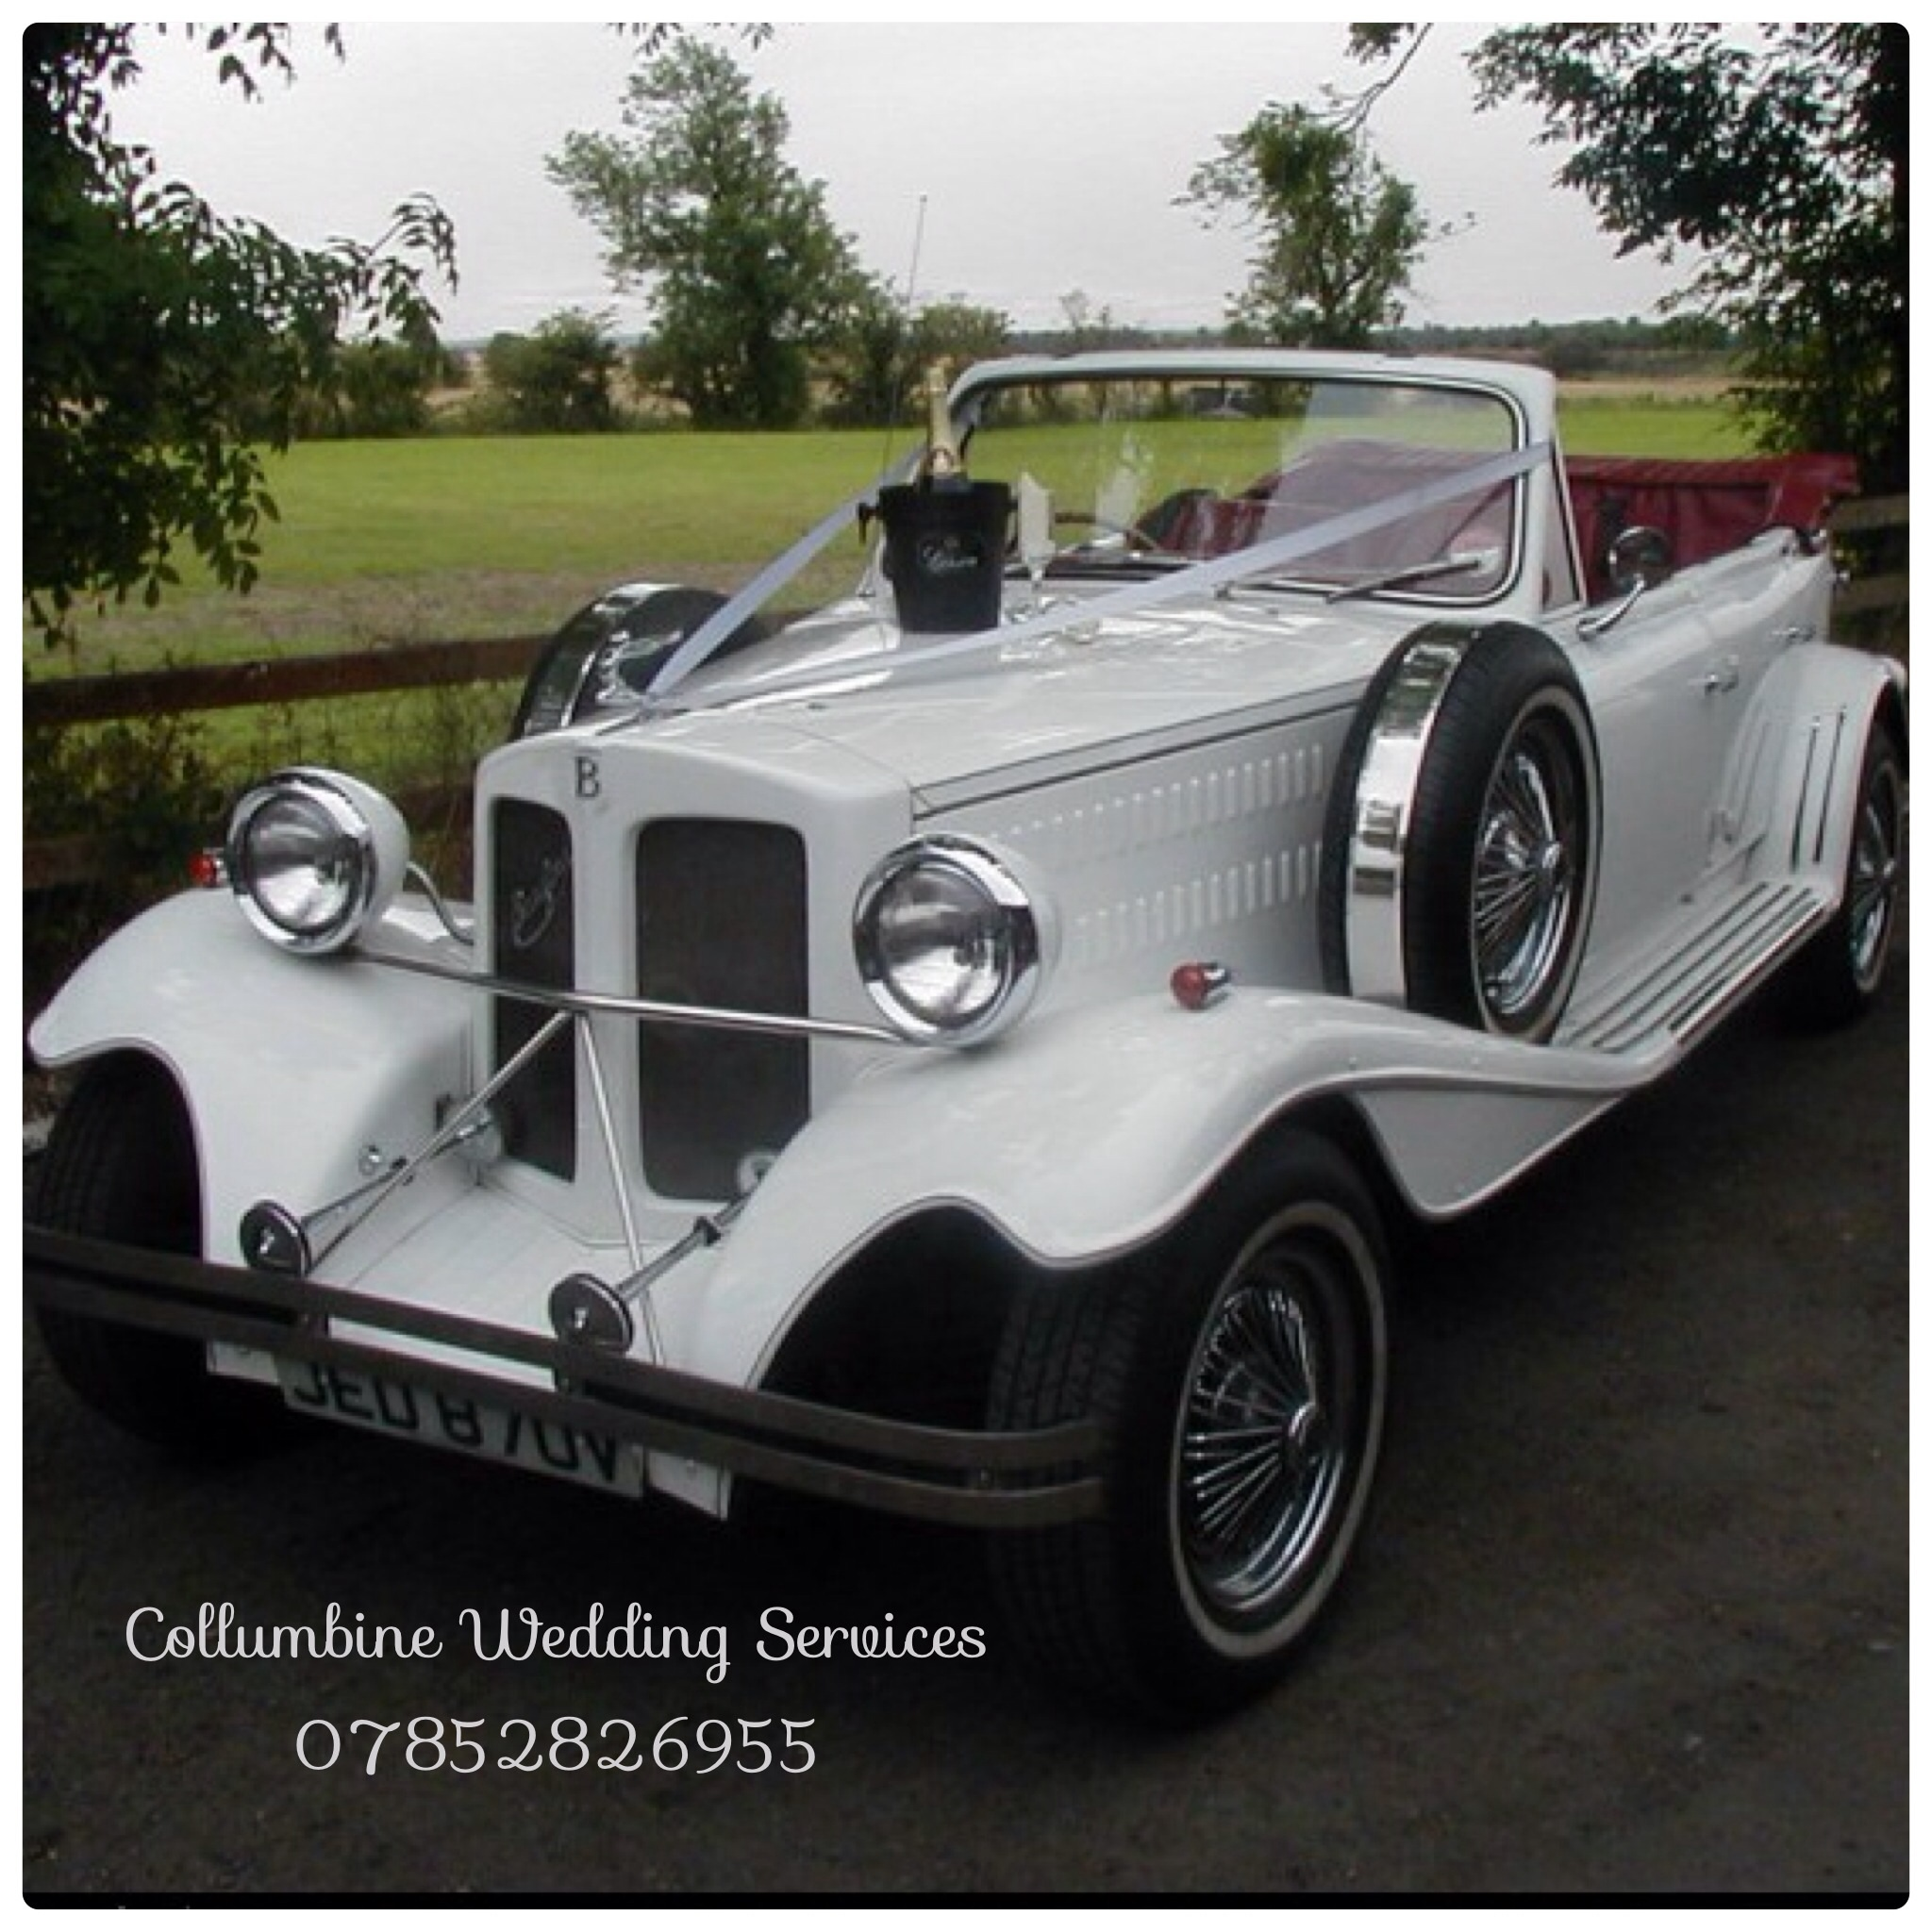 Collumbine Limos Ltd, Falkirk, Stirlingshire